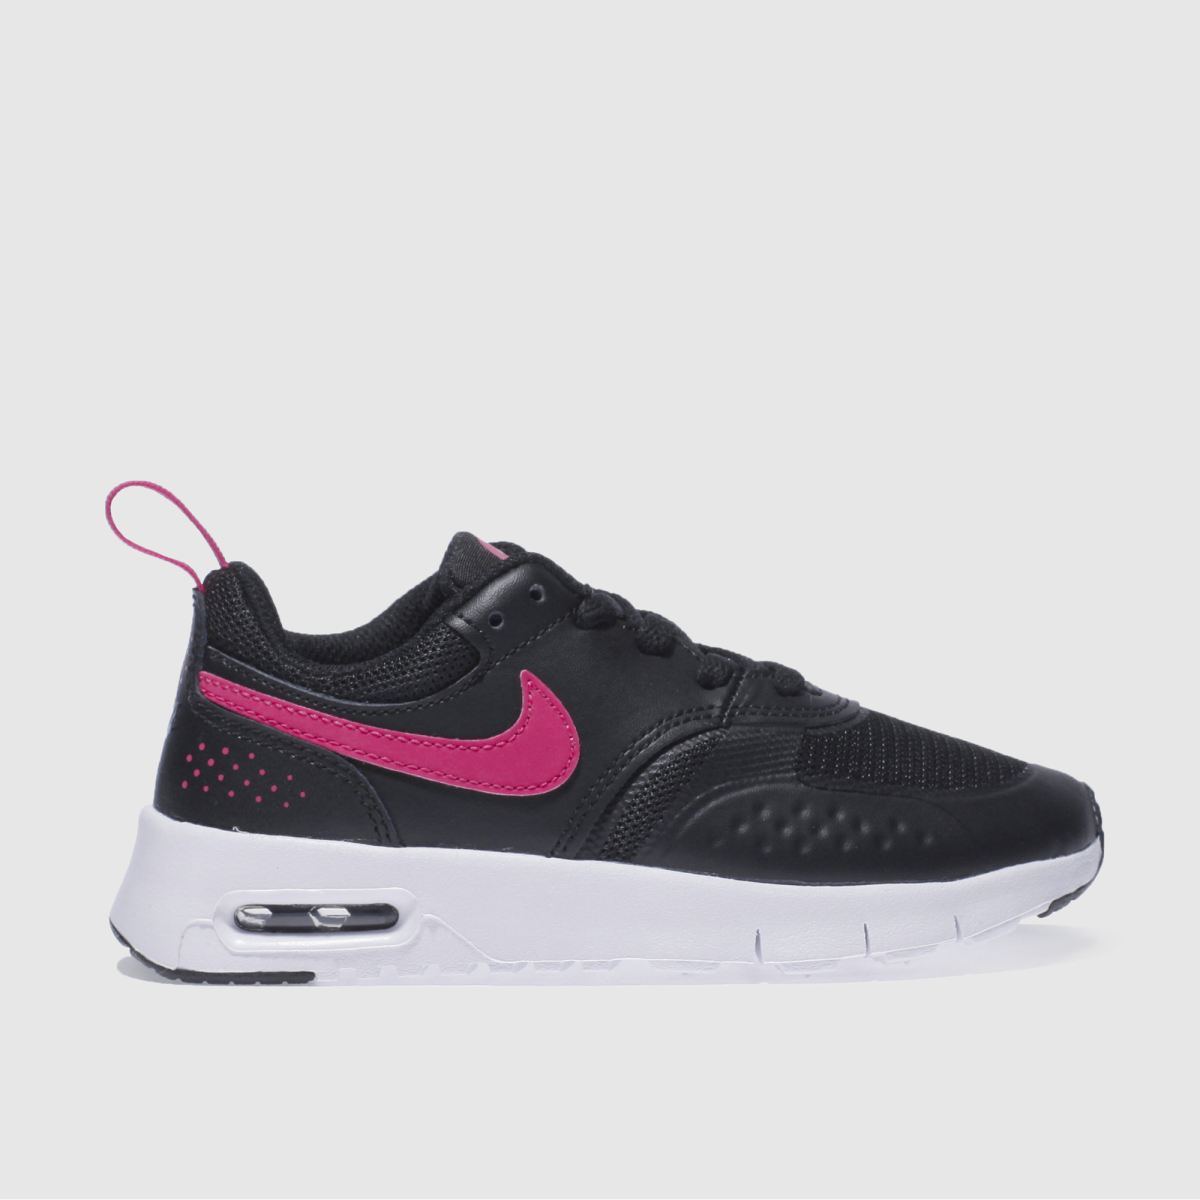 nike black & pink air max vision Girls Junior Trainers